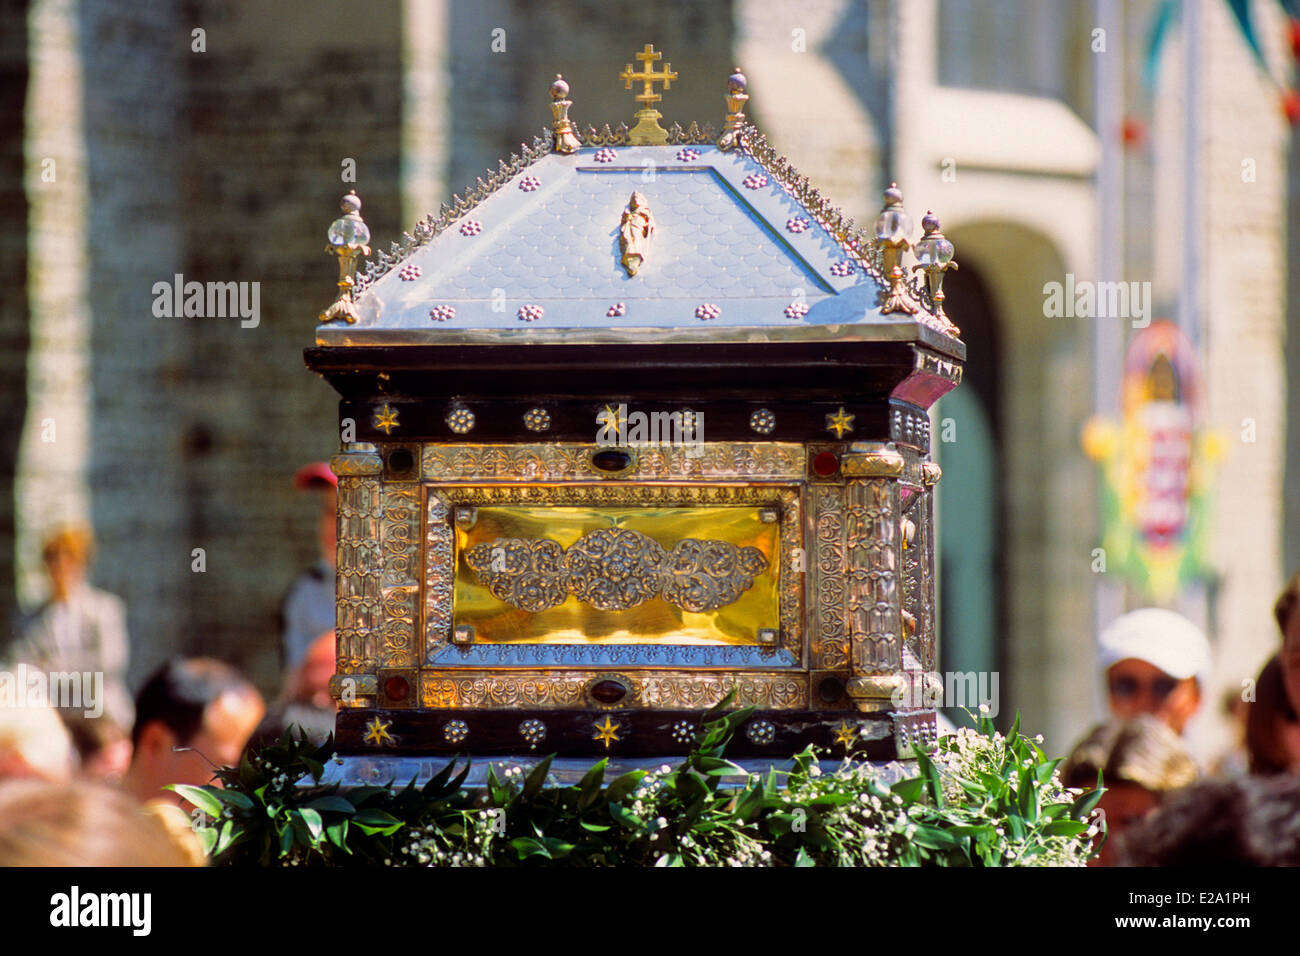 Belgium, Western Flanders, Bruges, reliquary during the parade to celebrate Easter - Stock Image